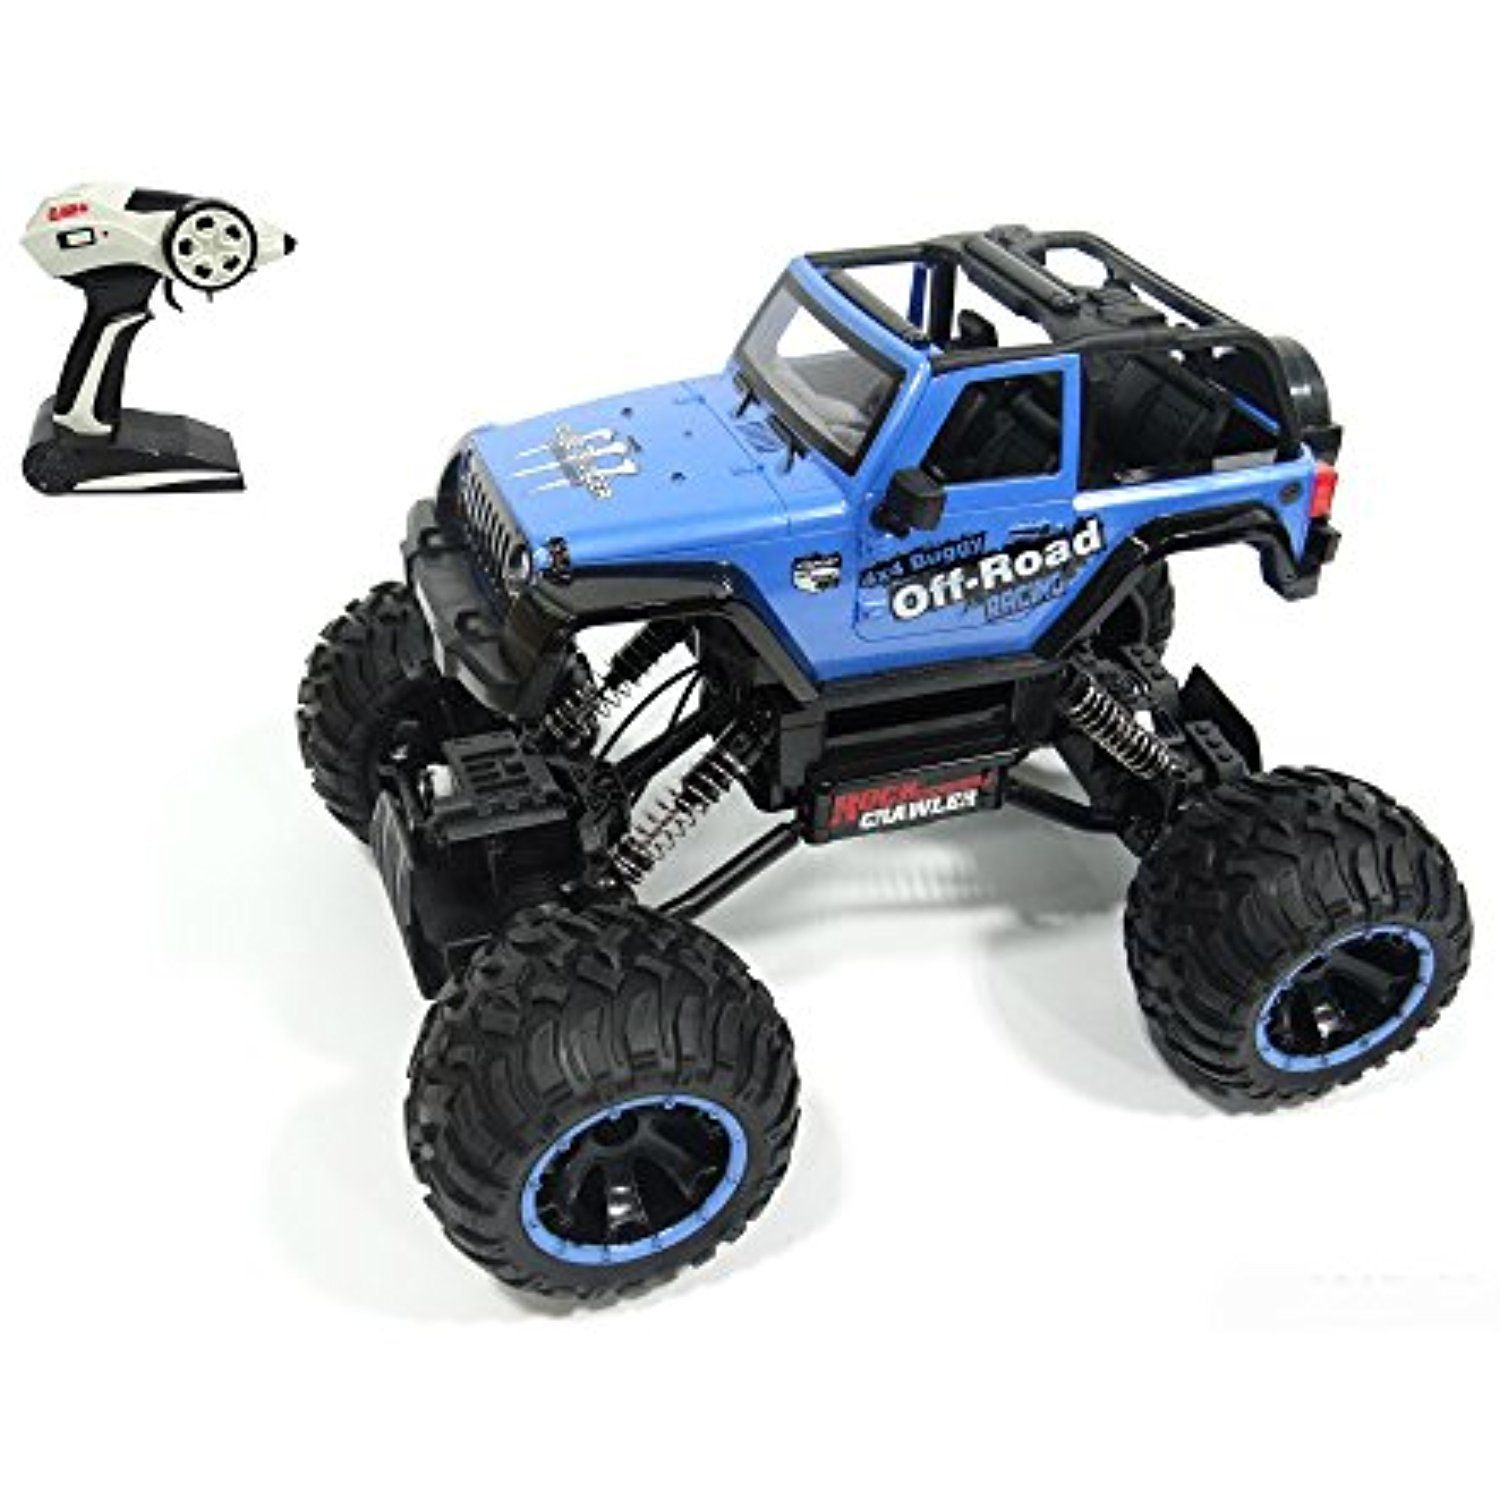 Rc Cars 1 14 Racing 2 4ghz Remote Control Electric Rock Crawler Radio Vehicle Off Road Click Image To Review More Details